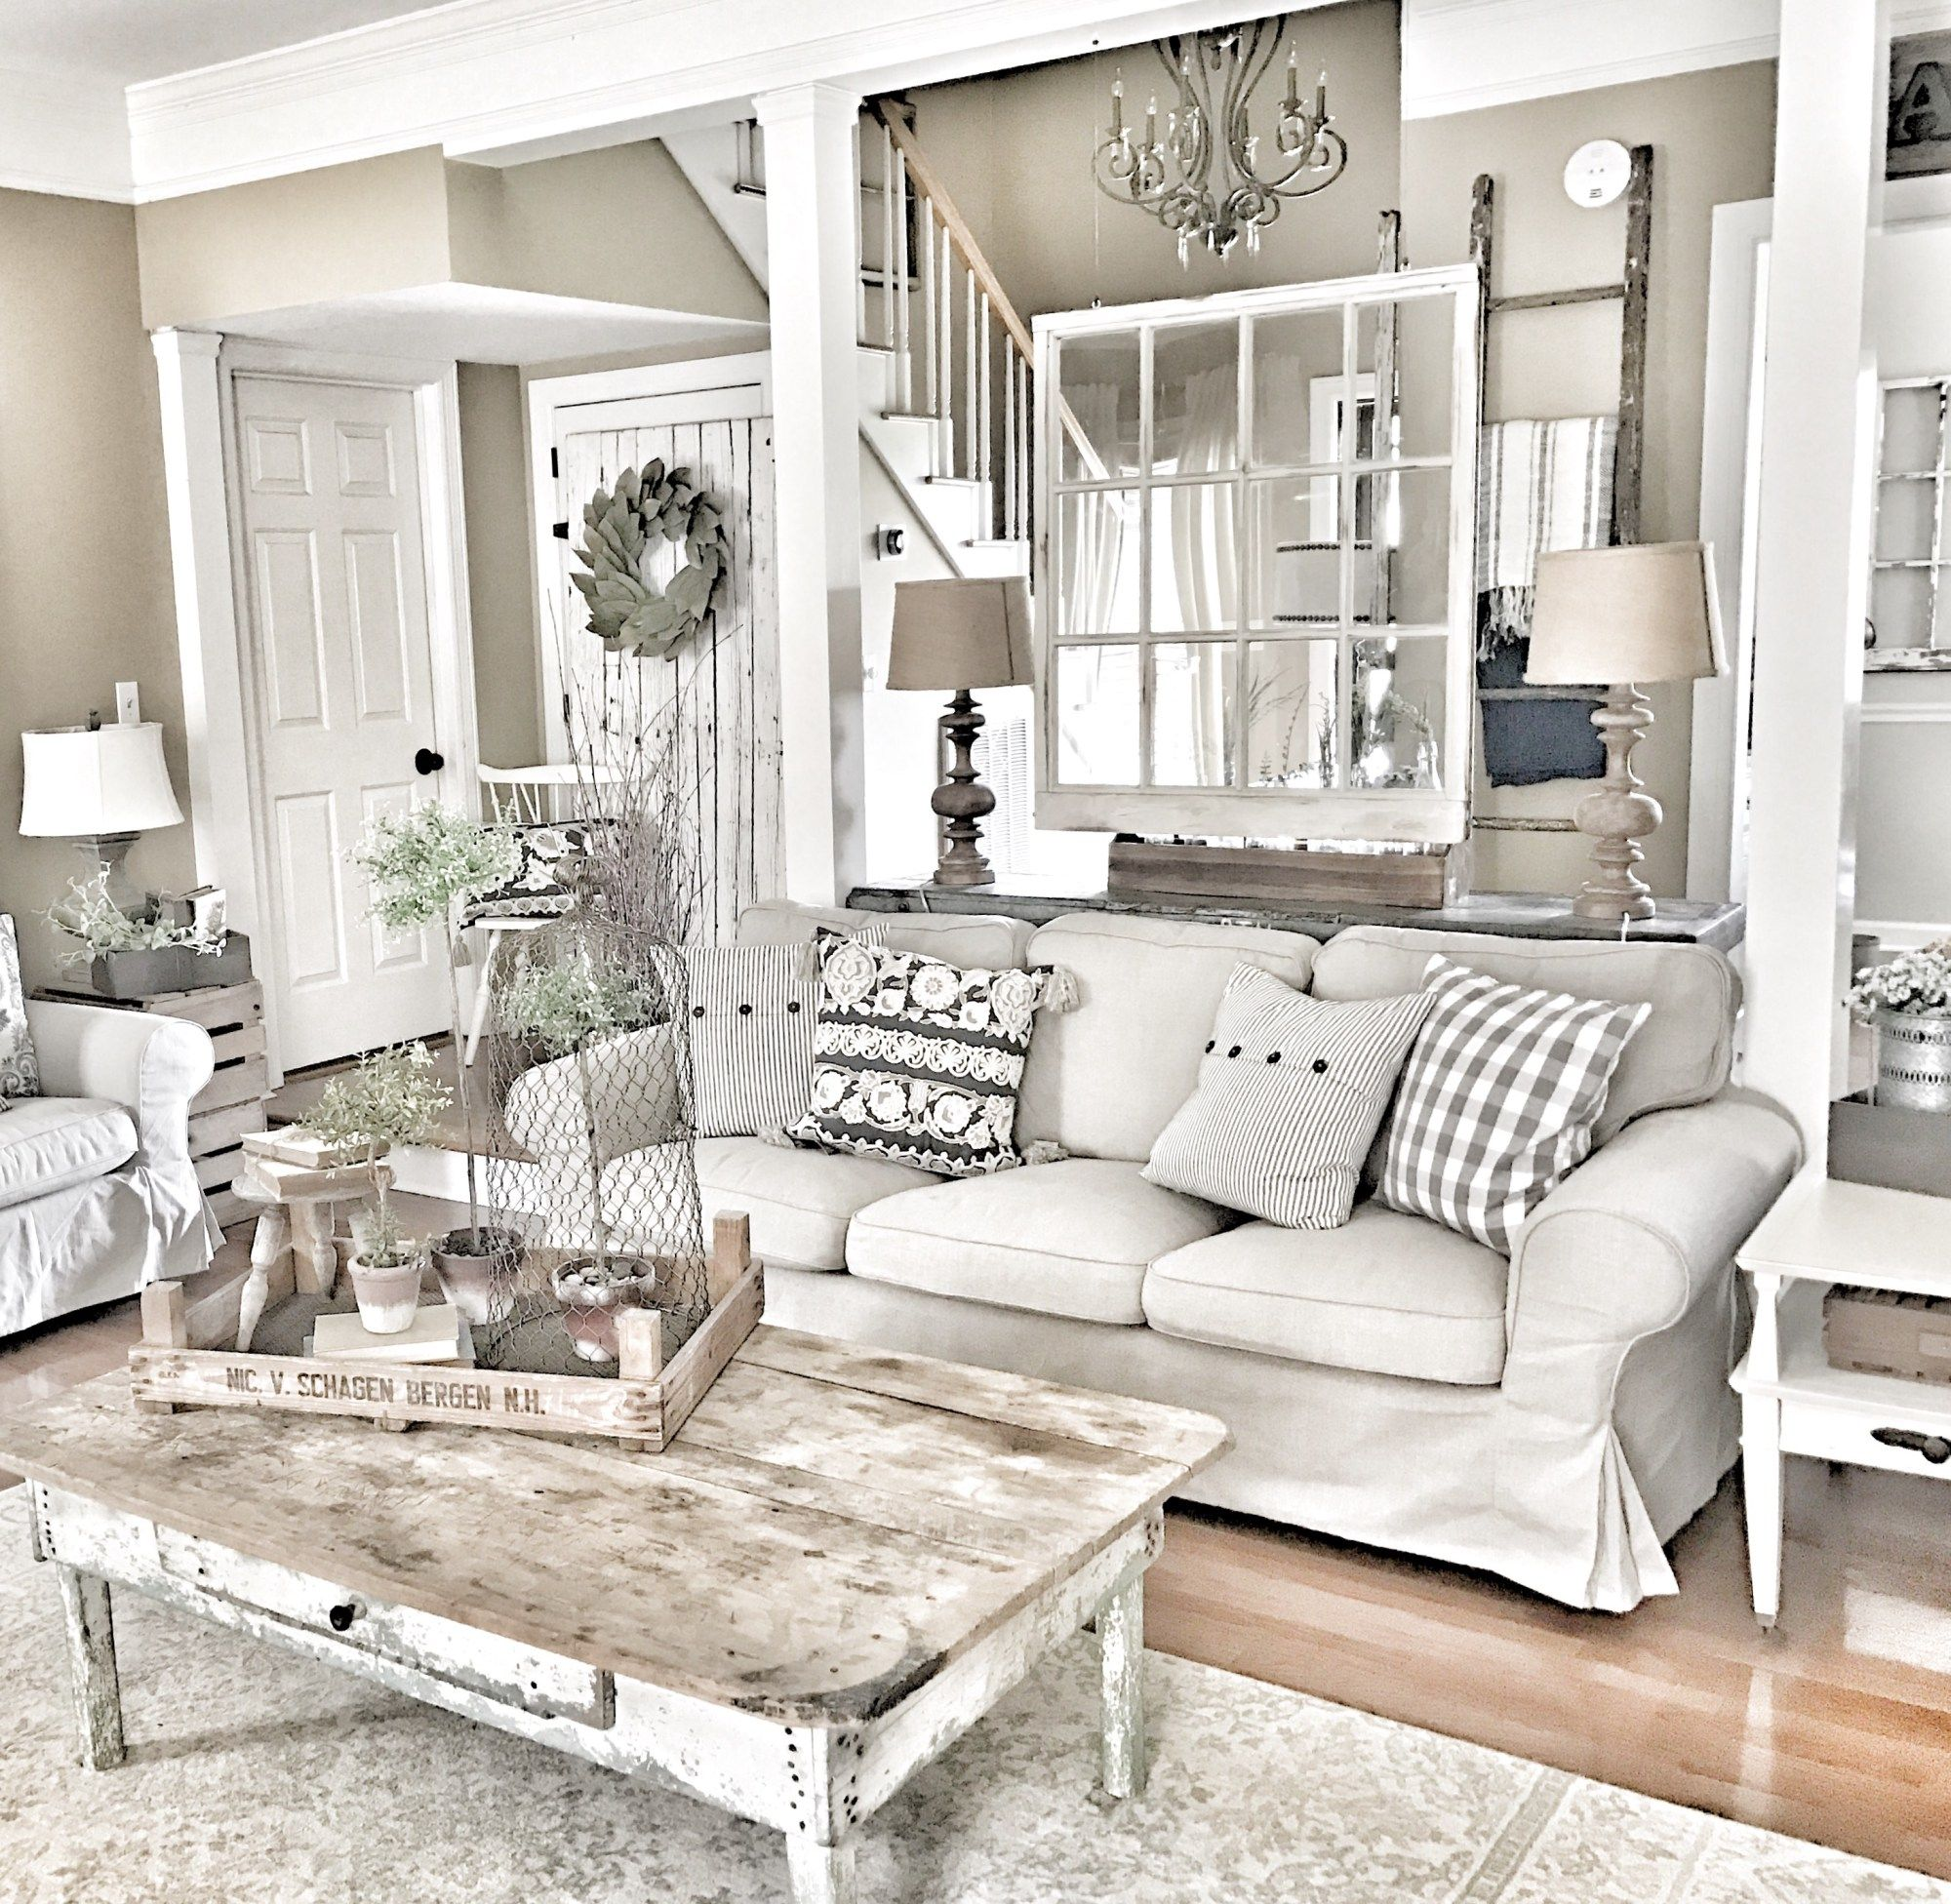 5 Ways To Decorate With Old Windows Bless This Nest Farm House Living Room Shabby Chic Living Room Design Shabby Chic Living Room Shabby chic living room tables